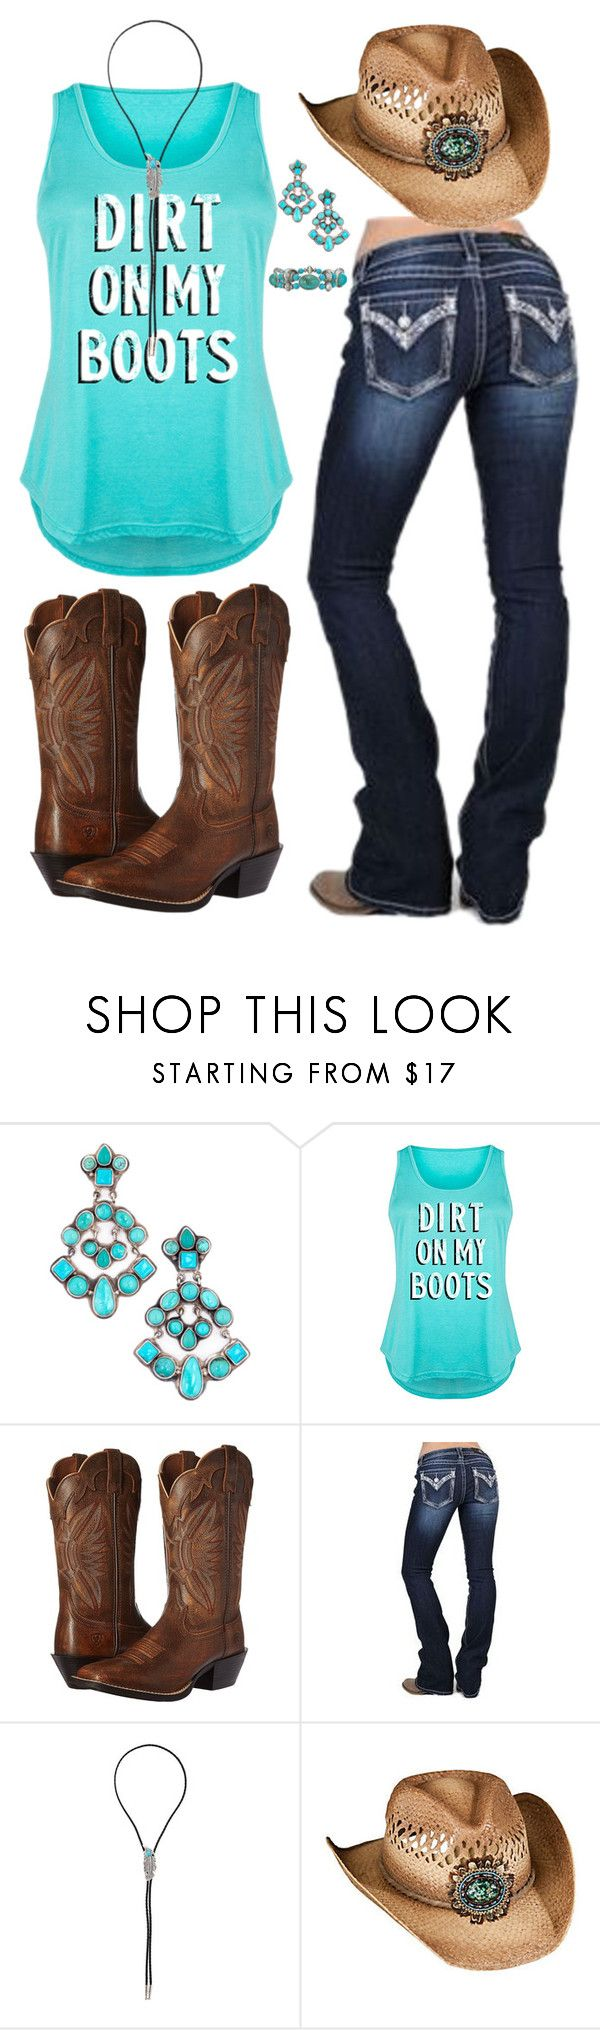 """Got a little dirt on my boots..."" by haybelle0207 ❤ liked on Polyvore featuring LC Trendz, Ariat, Miss Me, M&F Western, Overland Sheepskin Co., Avon, Boots, western and plus size clothing"